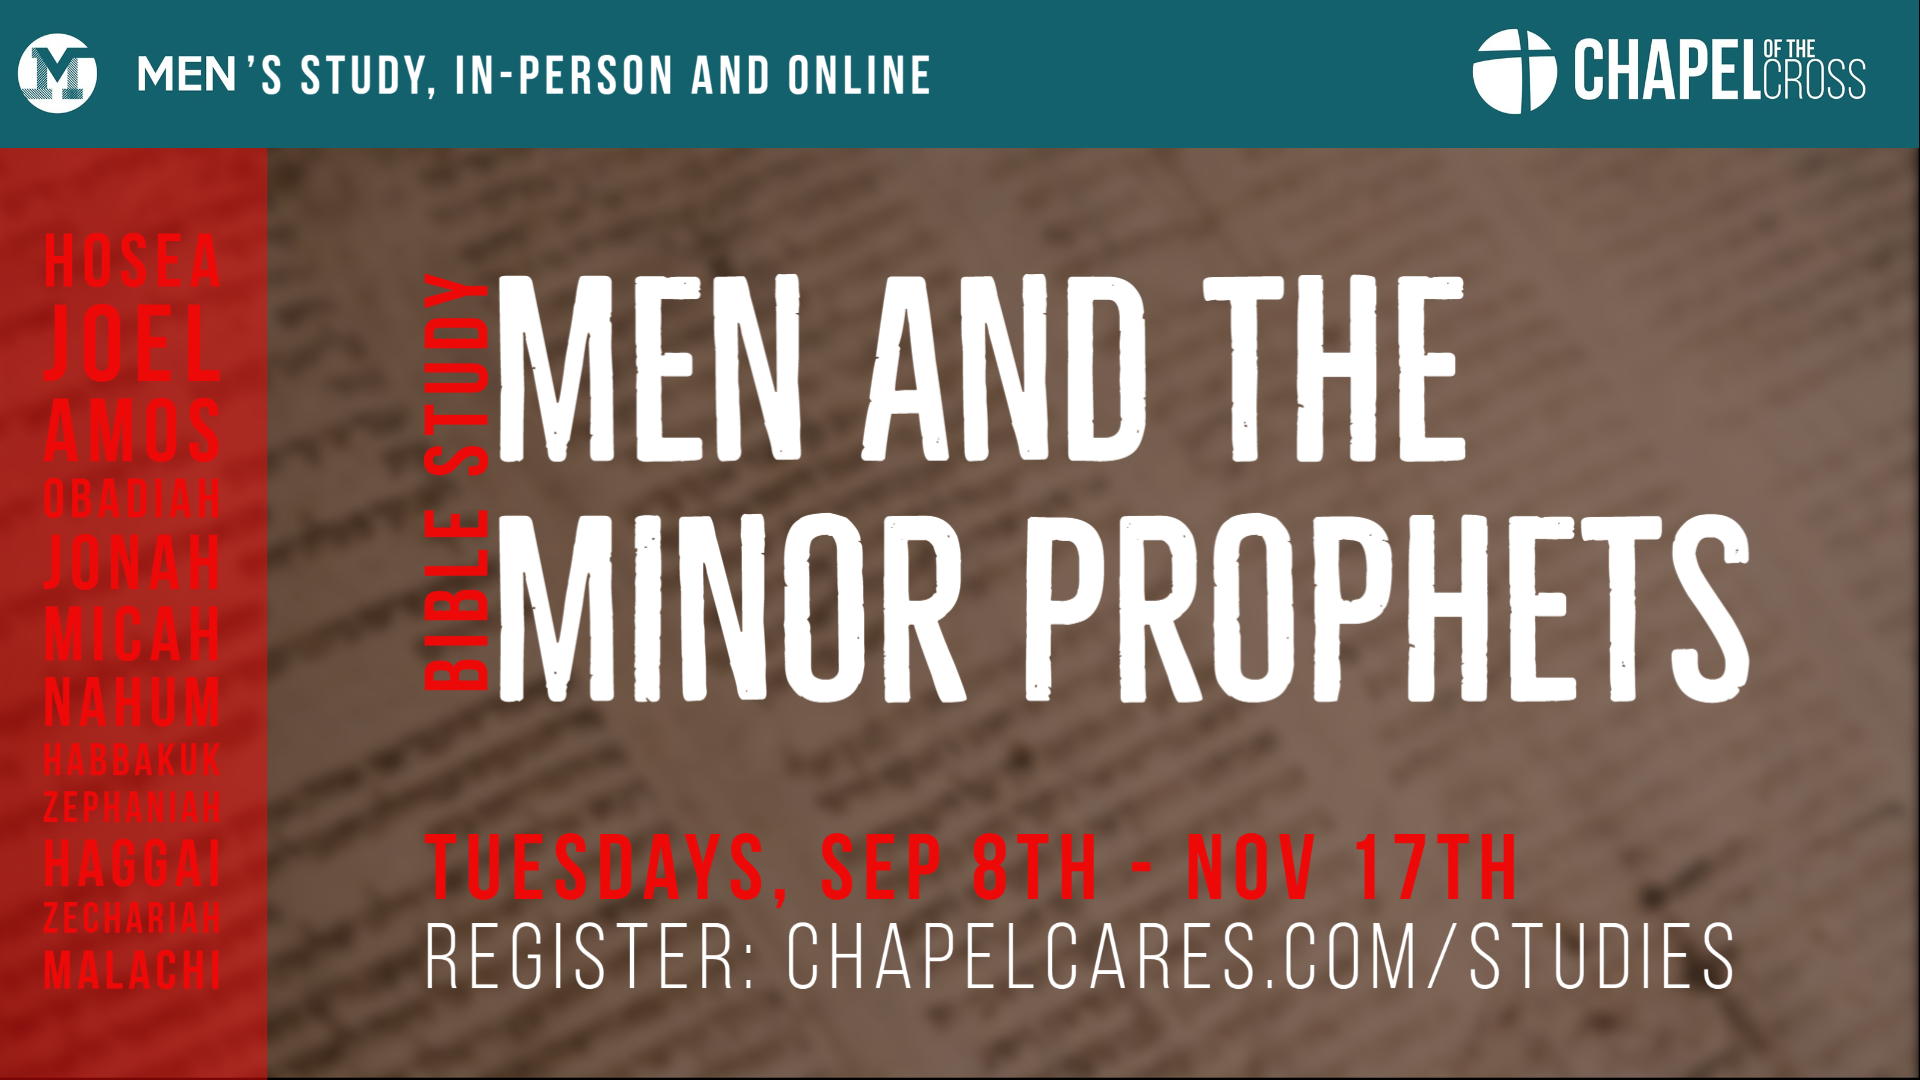 Men Minor Prophet (2) image